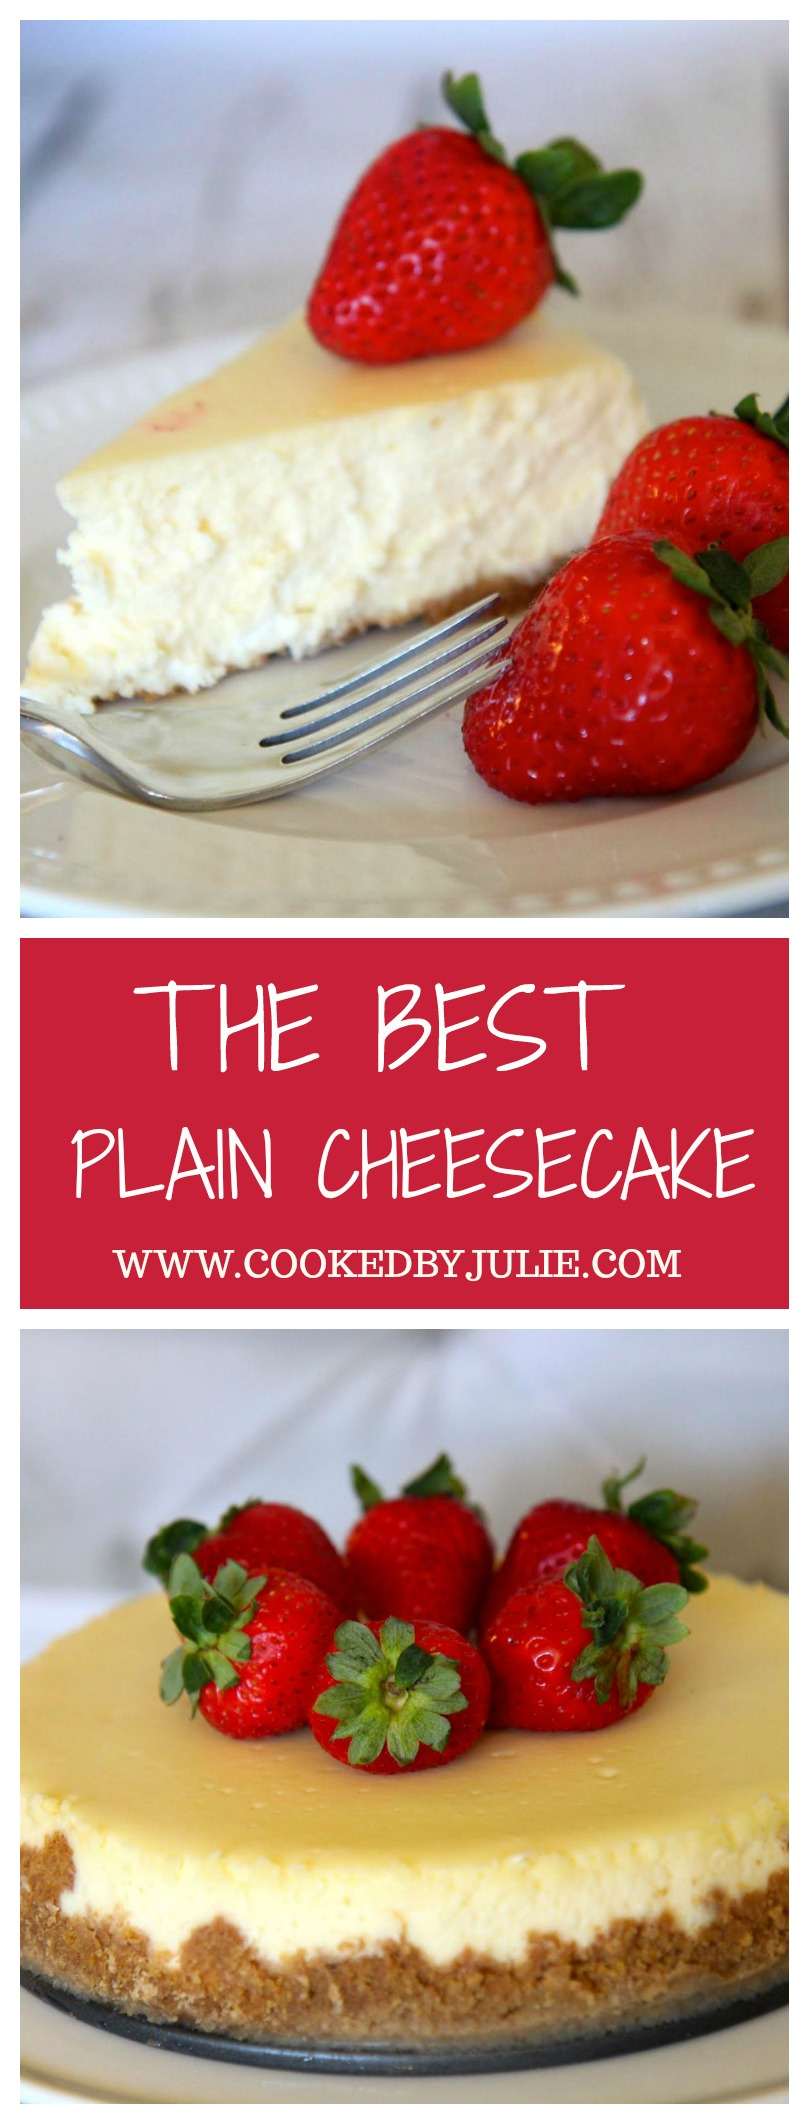 The Best Homemade Plain Cheesecake Recipe